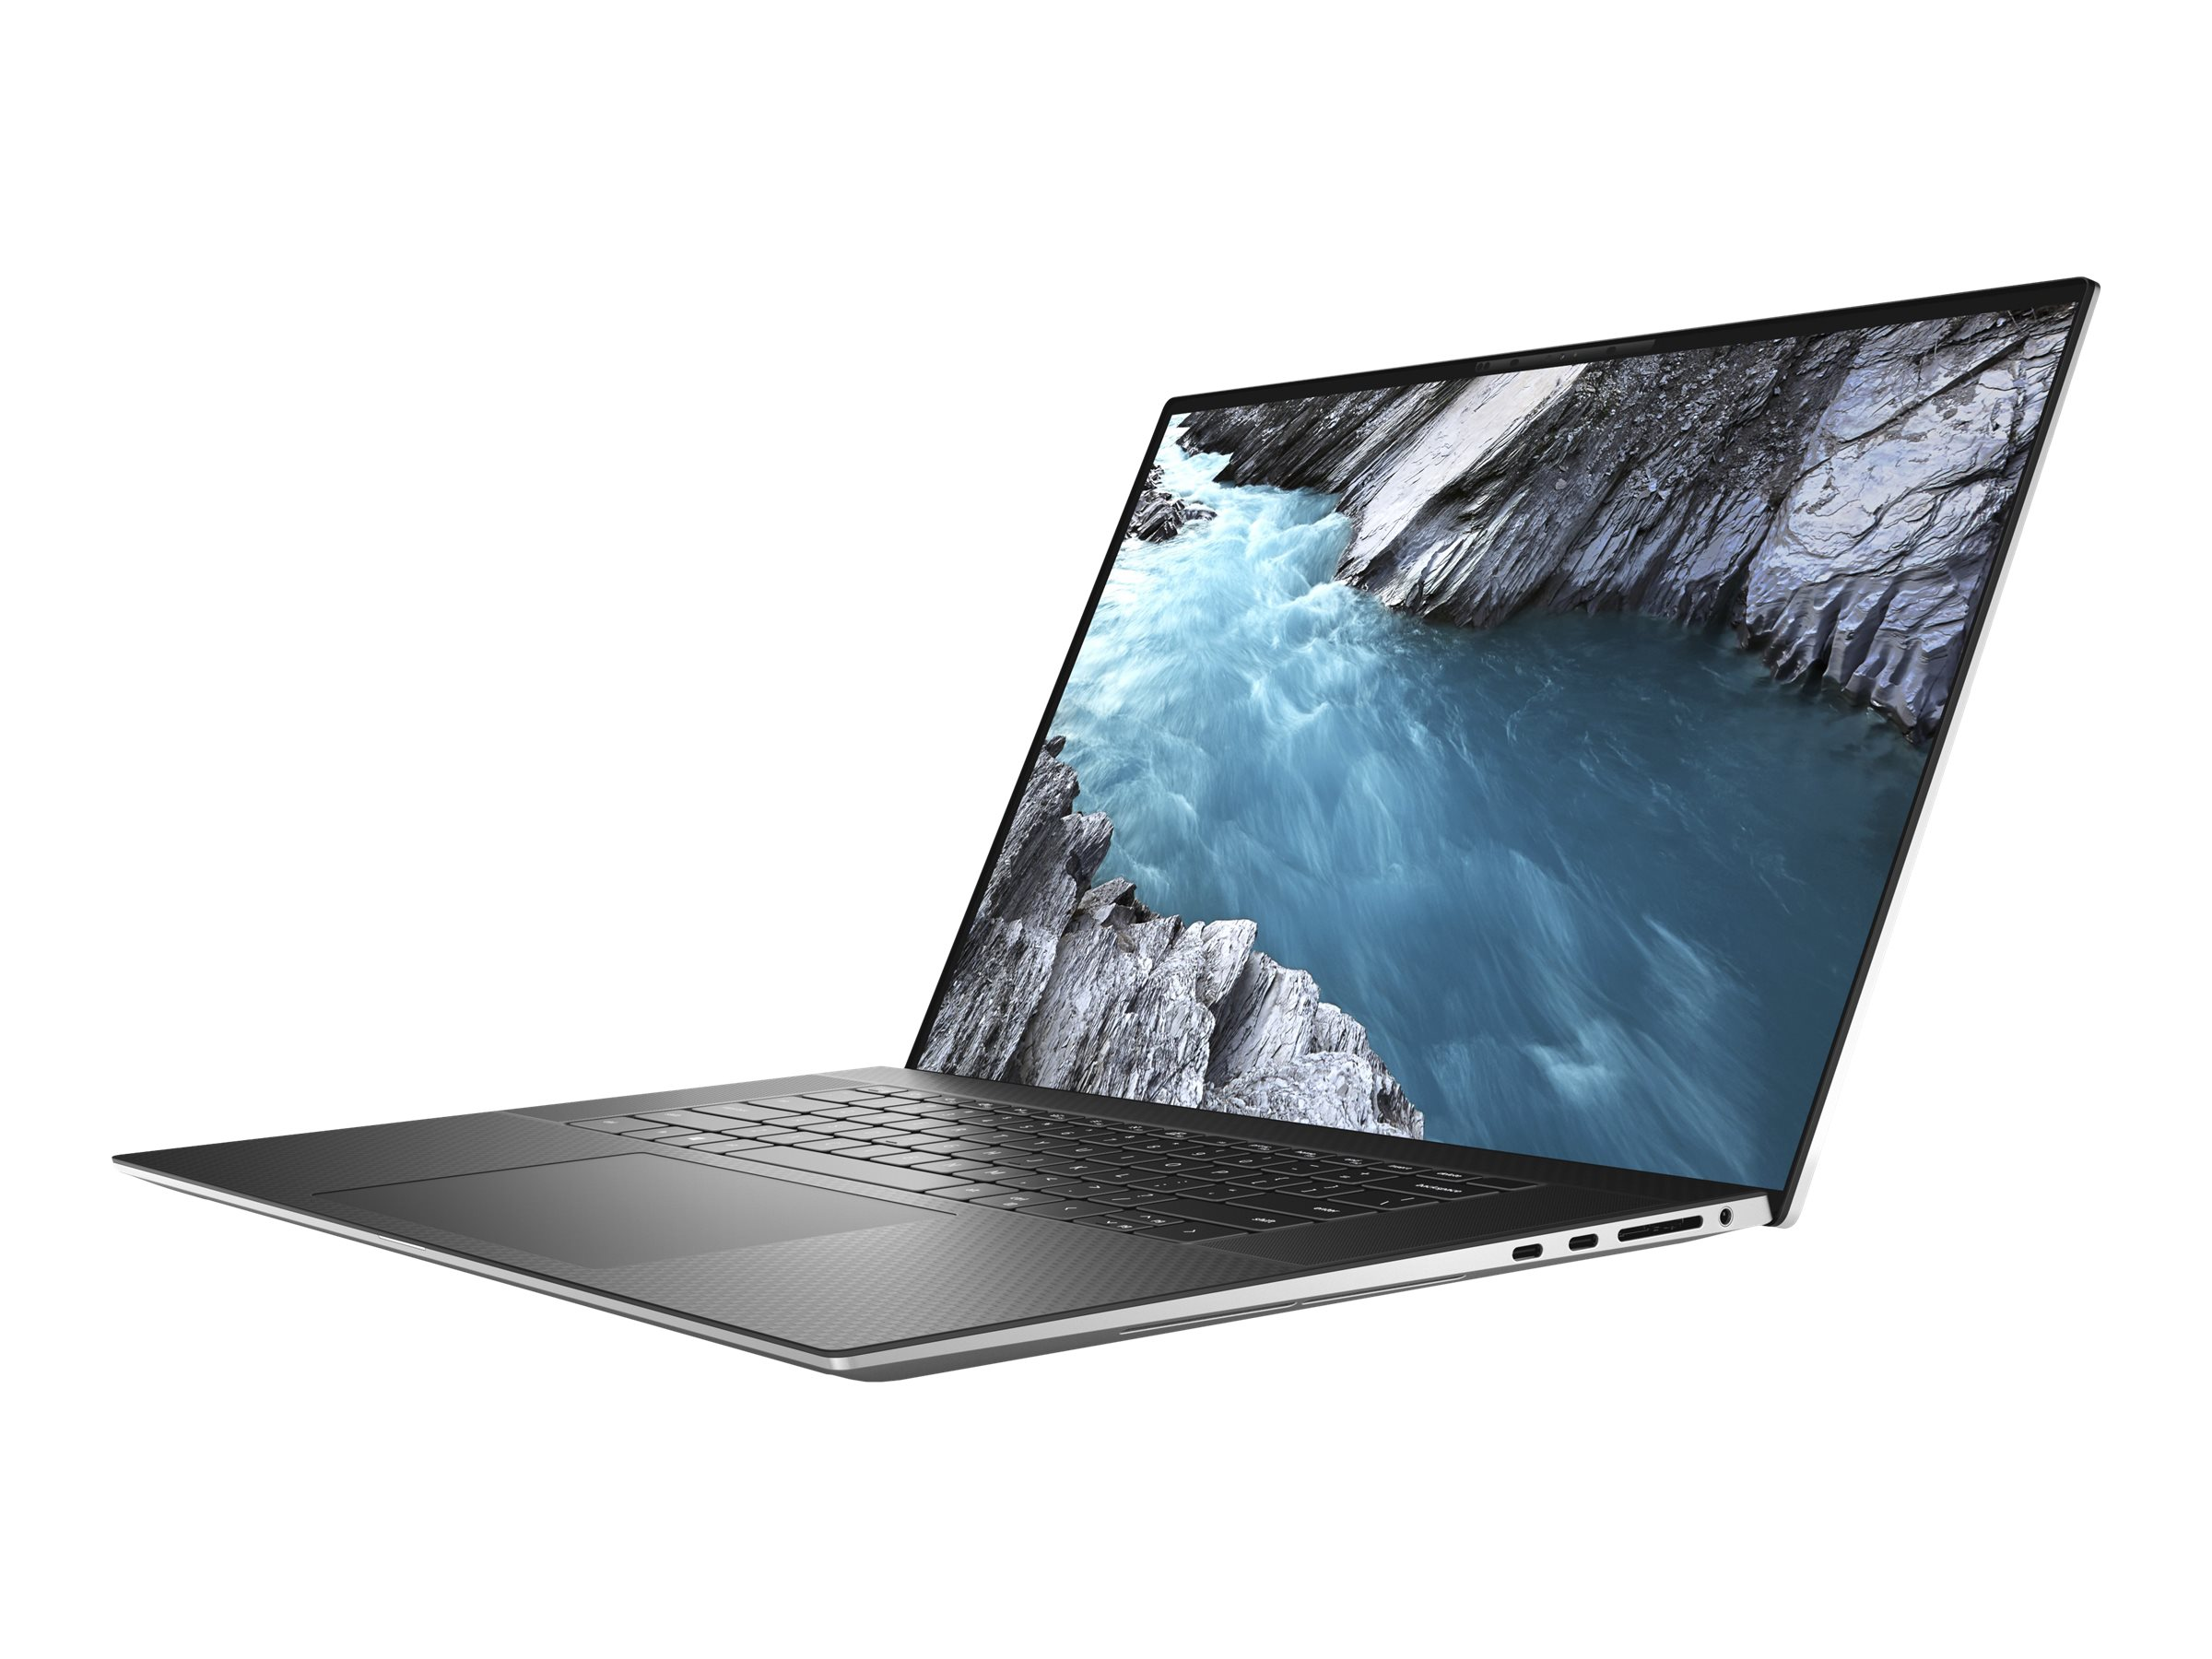 """Dell XPS 17 9700 - Core i5 10300H / 2.5 GHz - Win 10 Home 64-Bit - 8 GB RAM - 512 GB SSD NVMe - 43.2 cm (17"""")"""